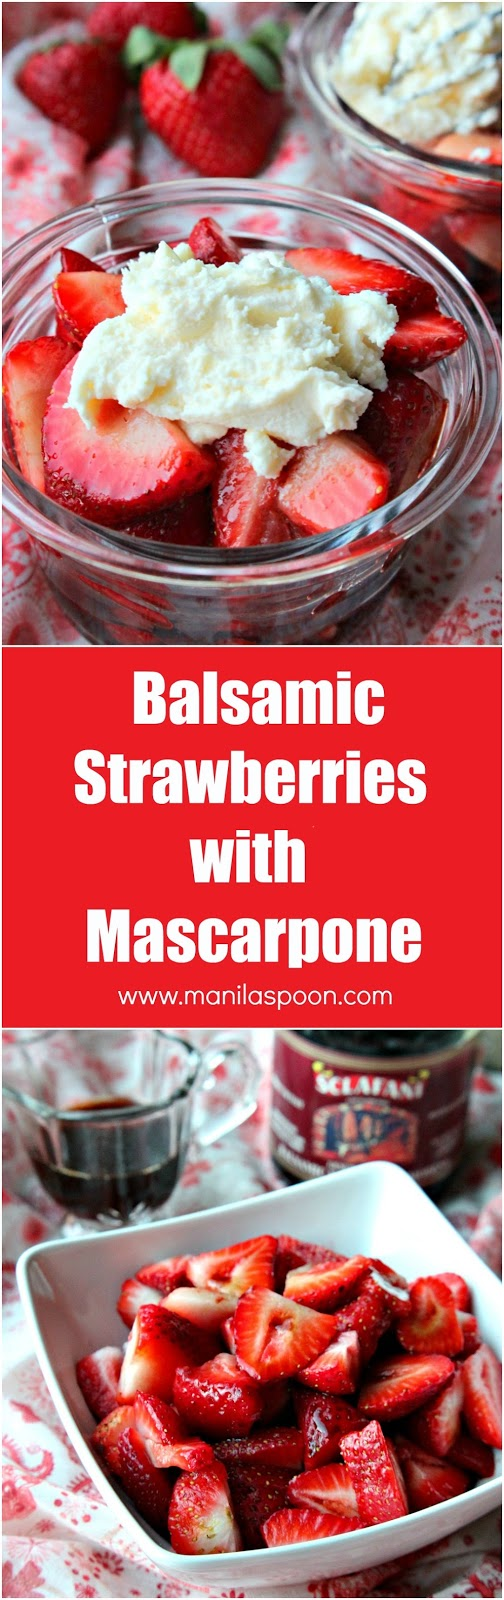 In 10 minutes or less, you have a delicious, fuss-free, spring-perfect dessert that will delight everyone! Balsamic Strawberries with Mascarpone | manilaspoon.com